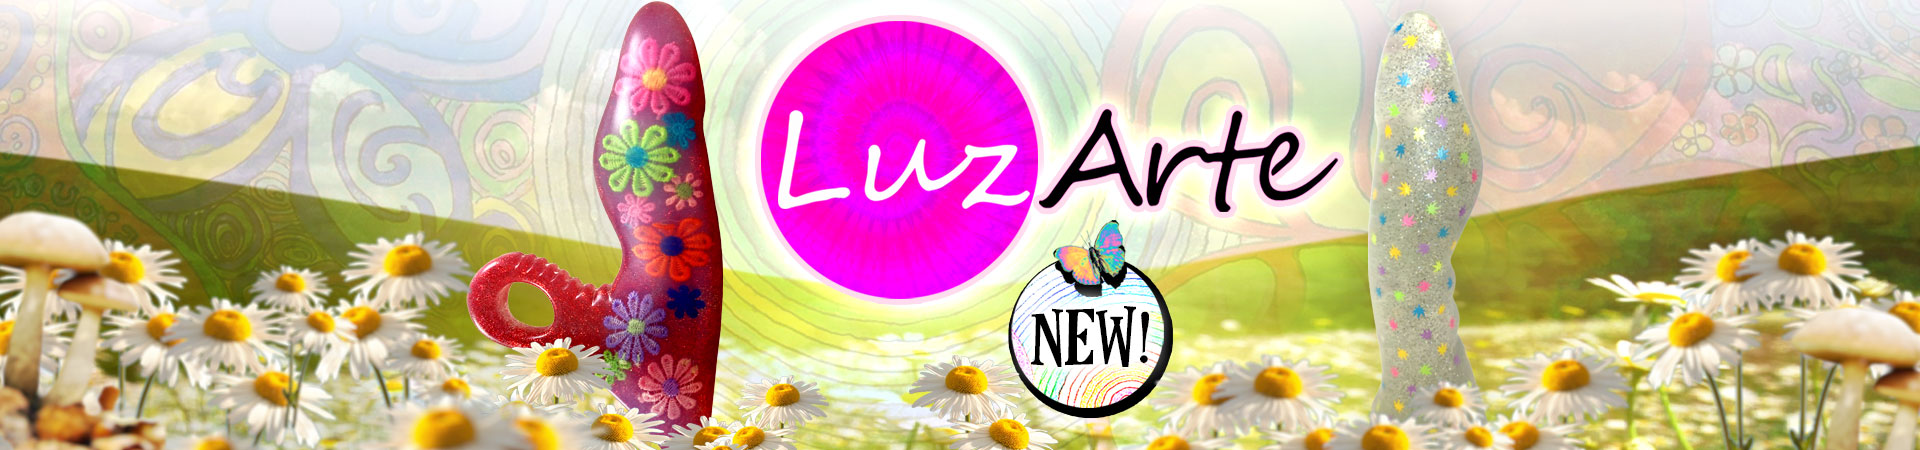 New From Luz Arte